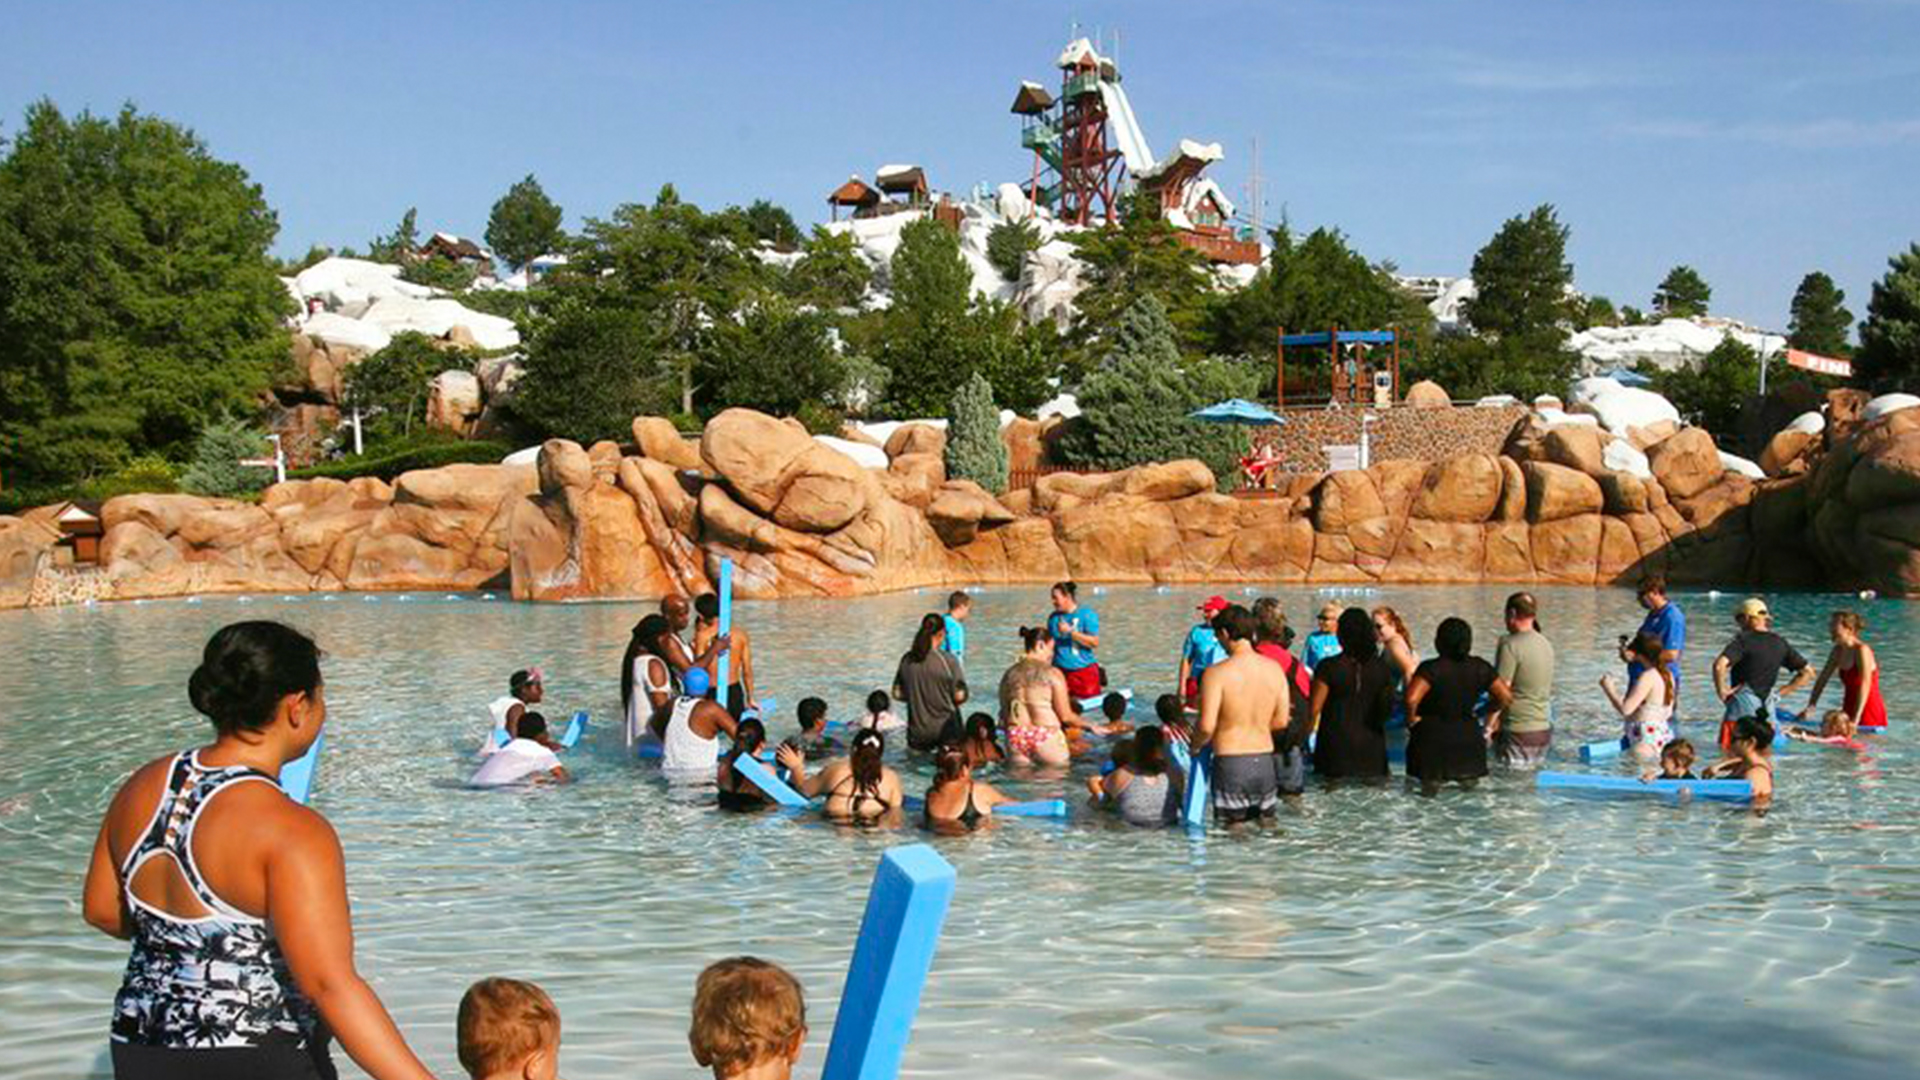 blizzard beach is located on the walt disney world property (between hollywood studios and animal kingdom) and is open pretty much year round, although it will close for the occasional orlando day when it's too cold to go swimming. Disney To Reopen Blizzard Beach Or Typhoon Lagoon In March 2021 Wfla